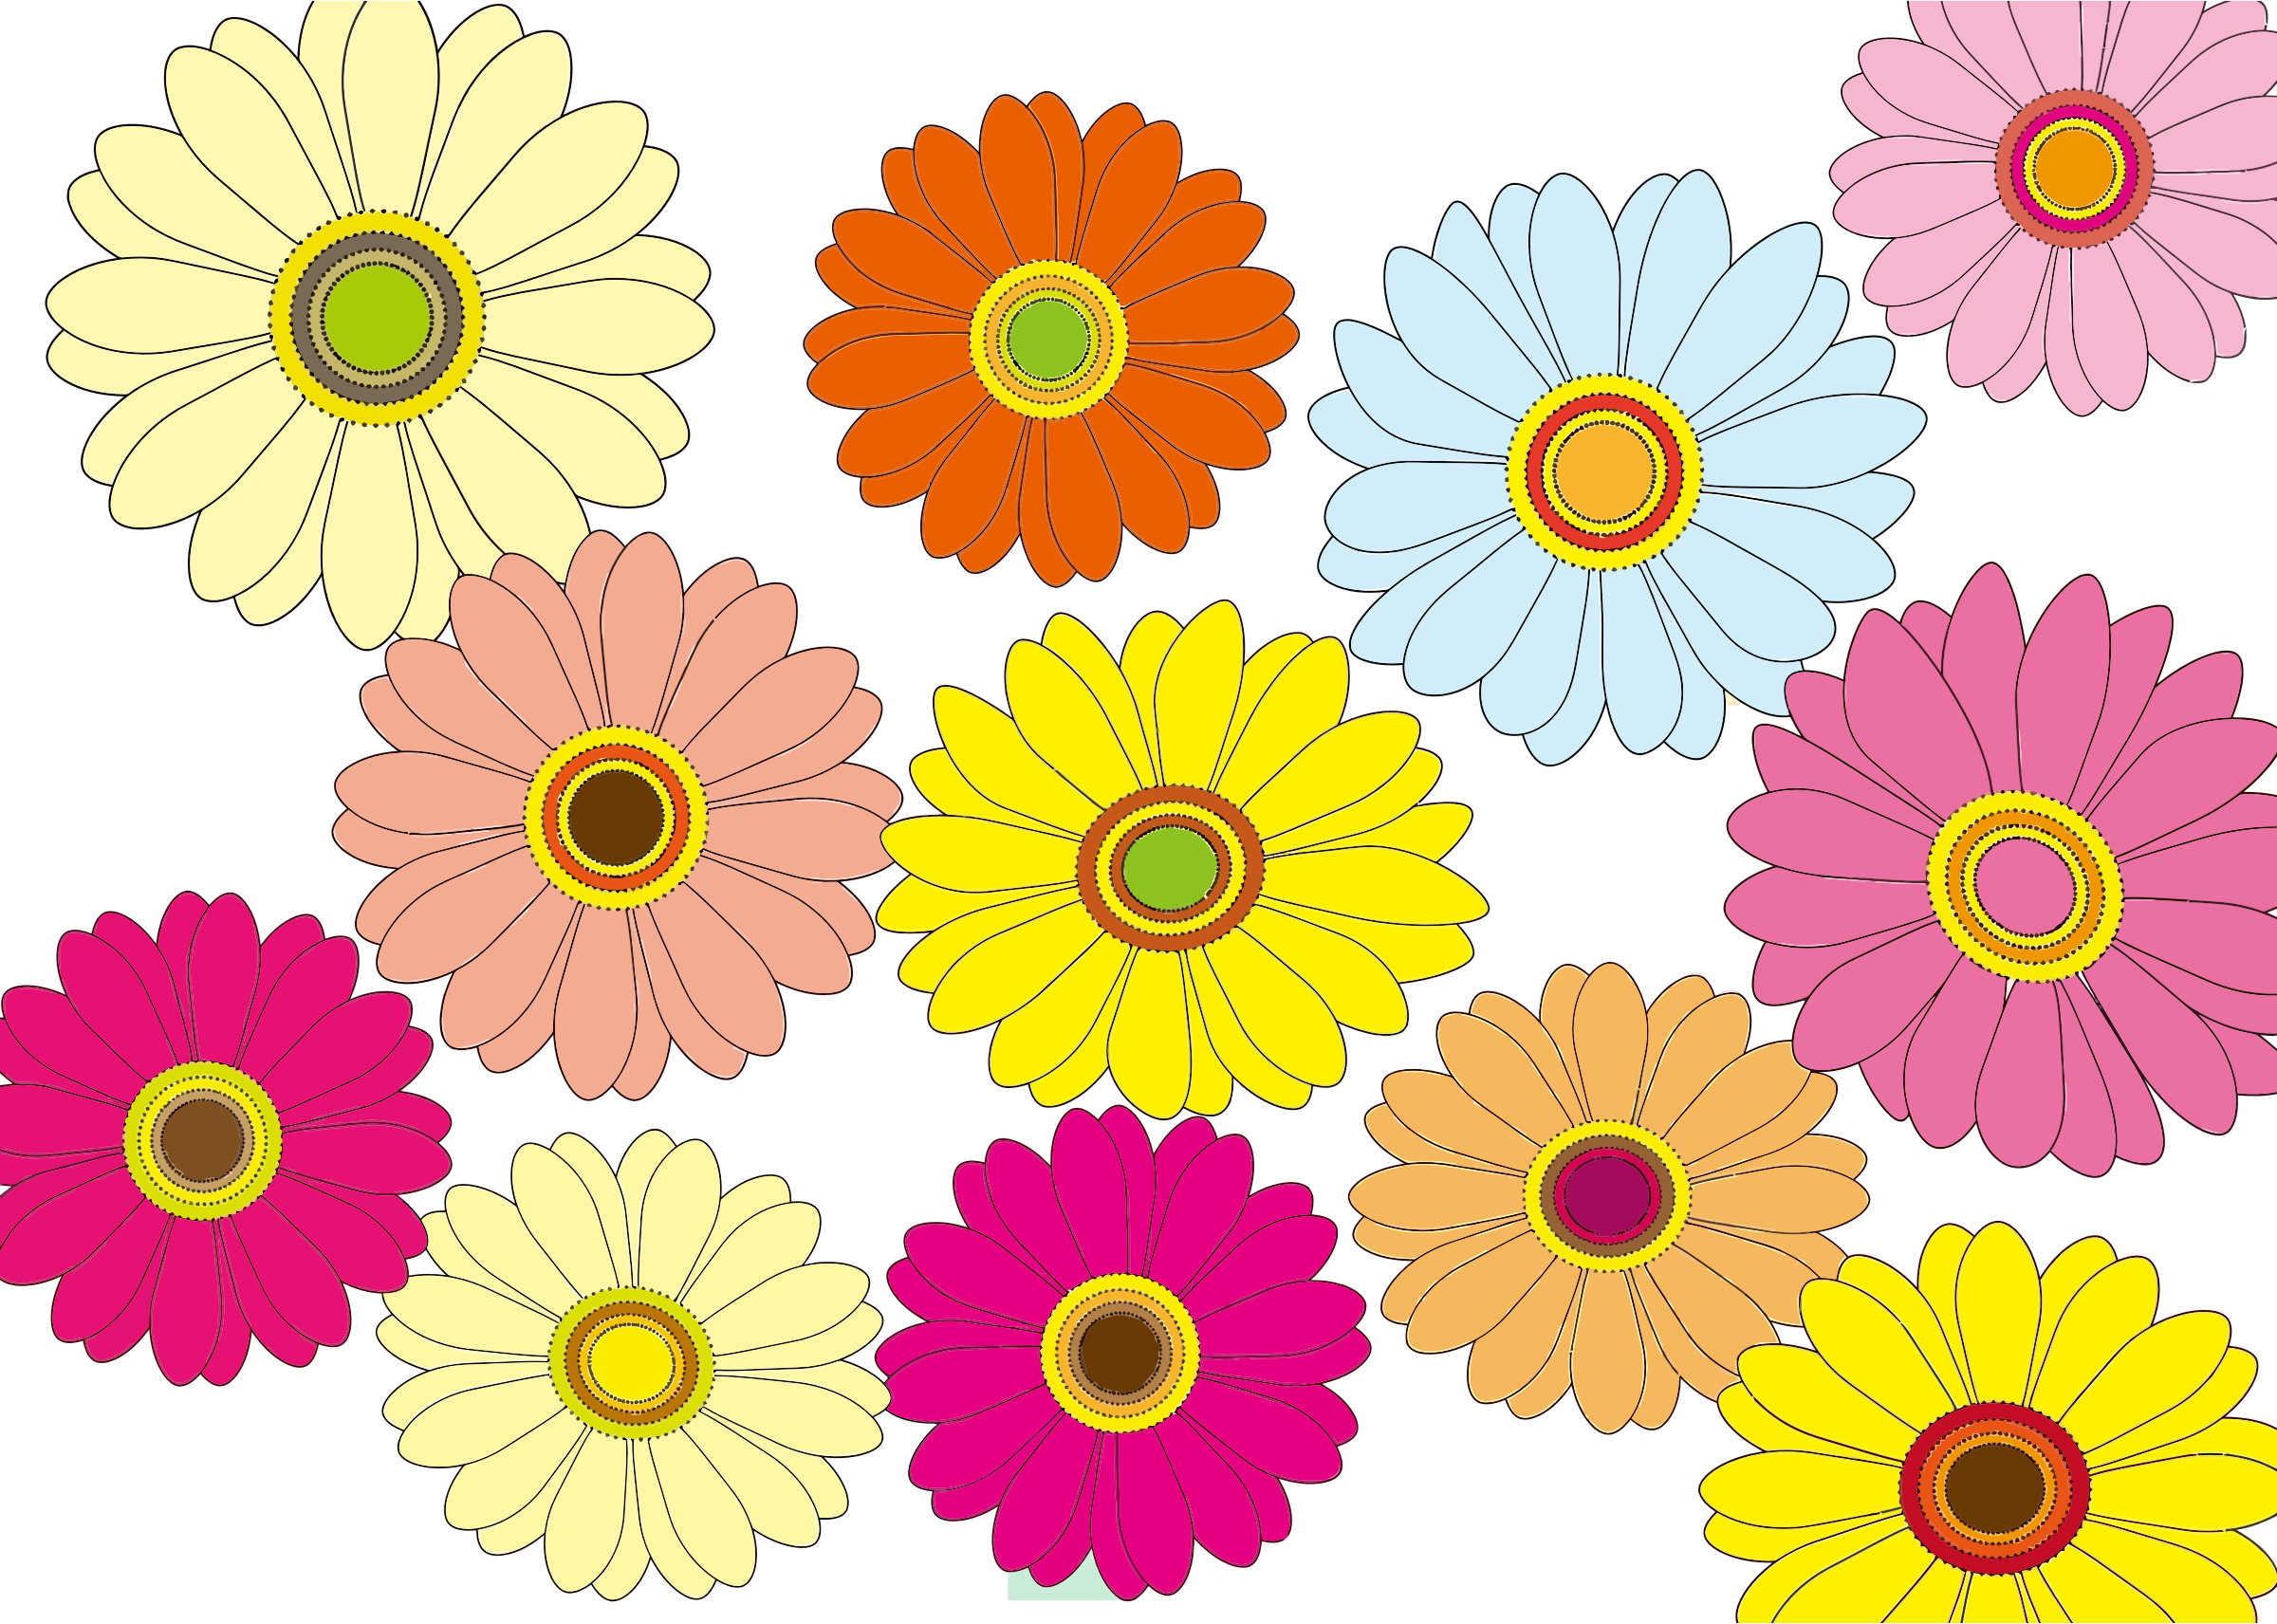 Multicolored Flowers by GDJ